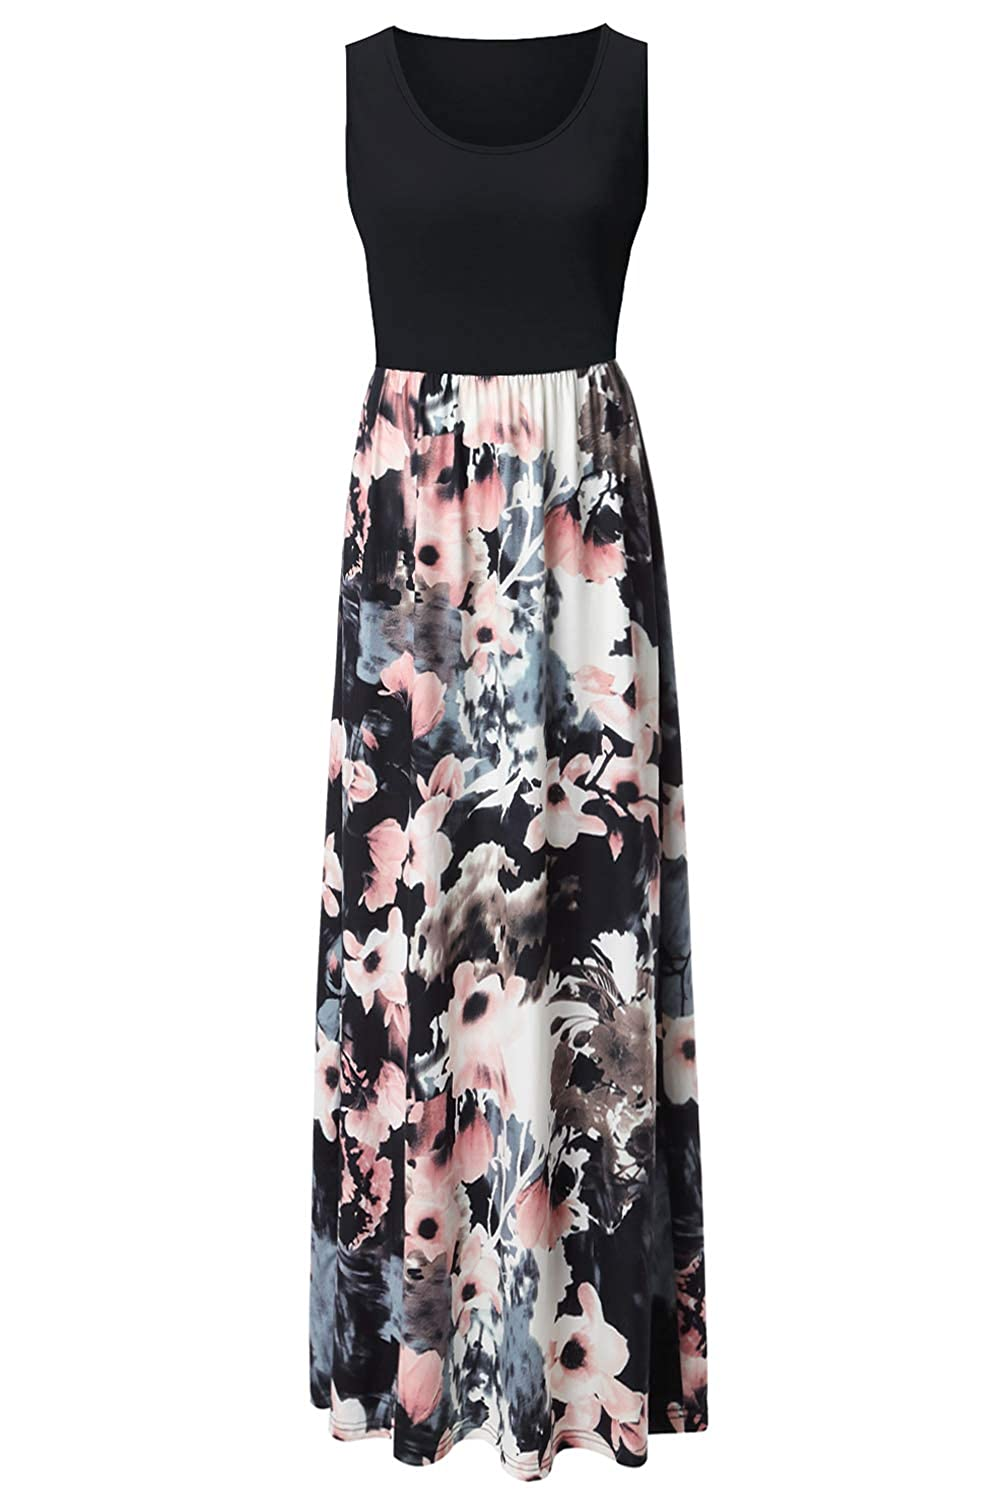 aa3e99add3 Zattcas Womens Summer Contrast Sleeveless Tank Top Floral Print Maxi Dress  at Amazon Women s Clothing store